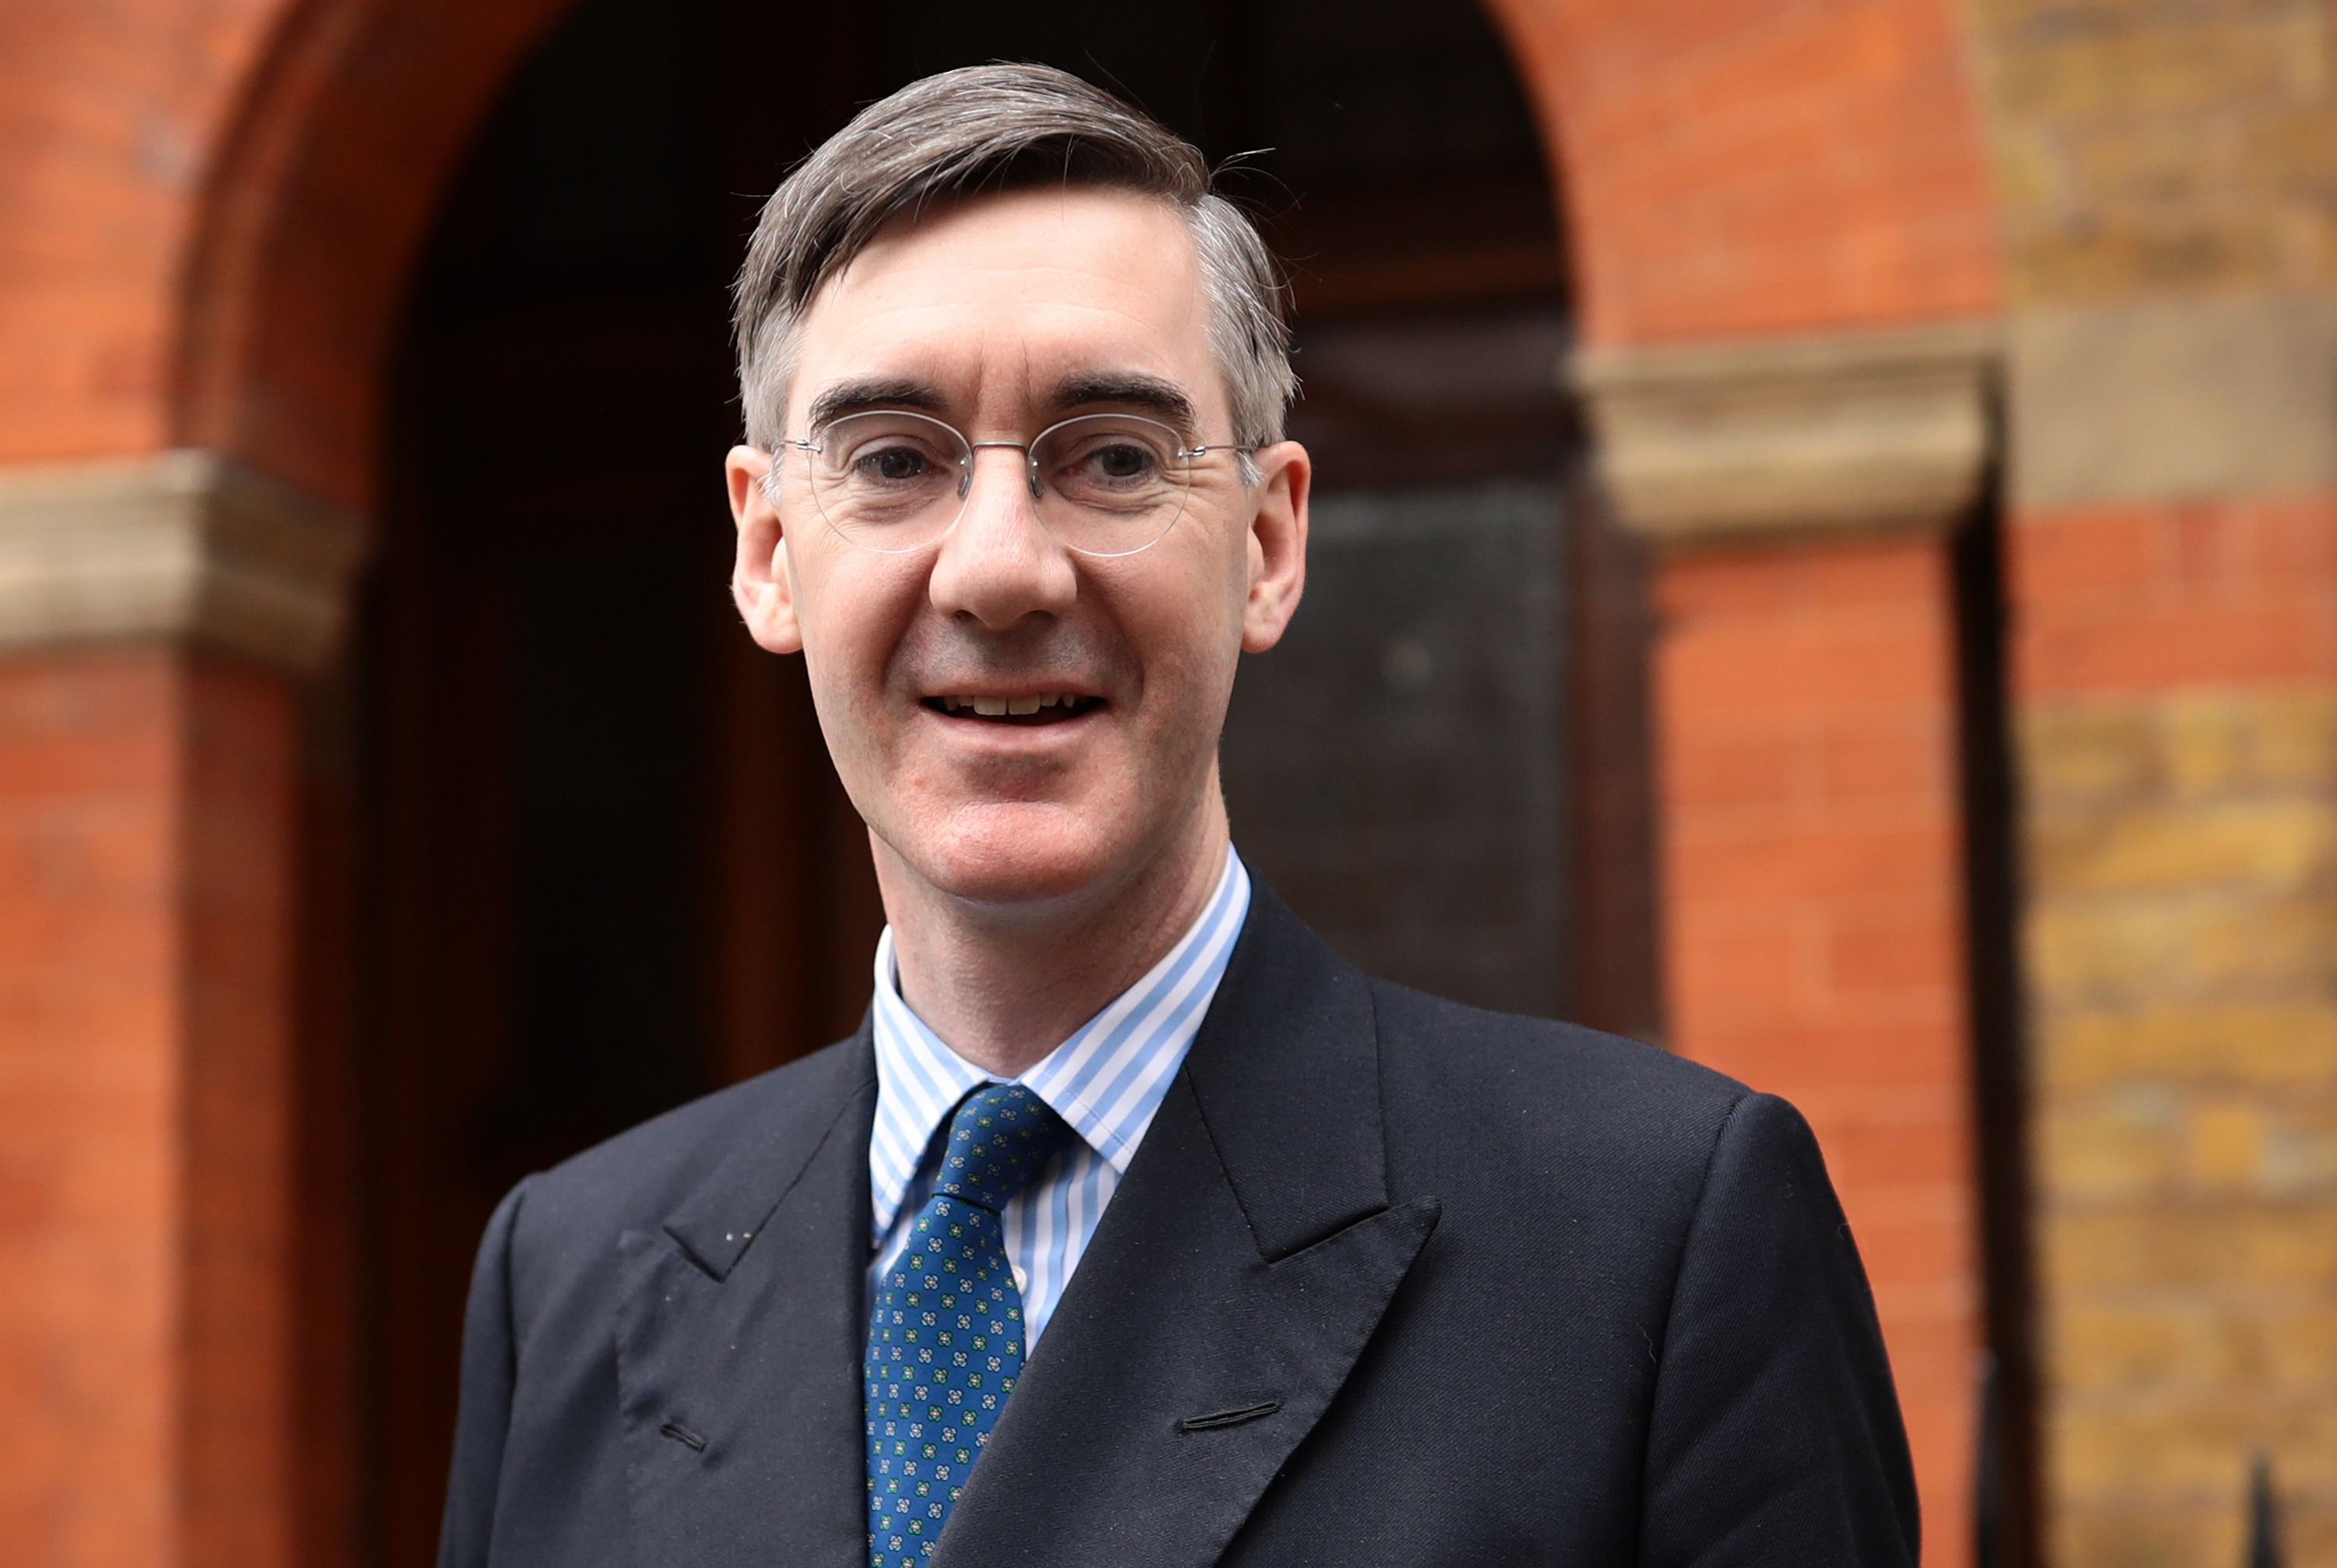 Jacob Rees-Moog